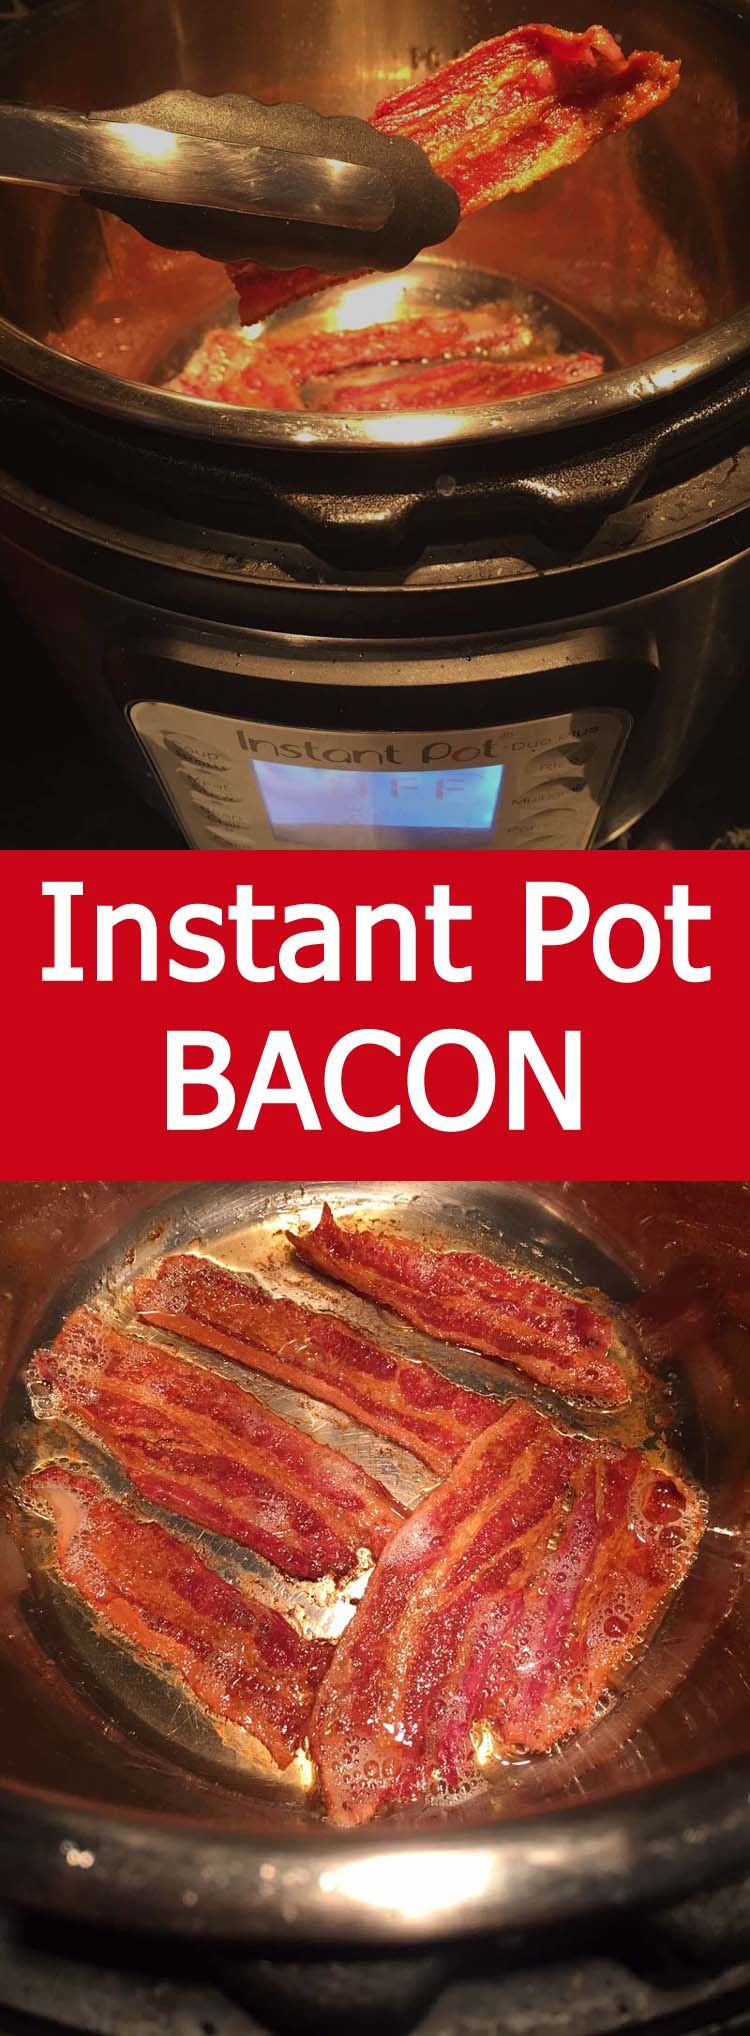 This Instant Pot bacon is so crispy! Cooking bacon in the Instant Pot is so easy and no splatters!